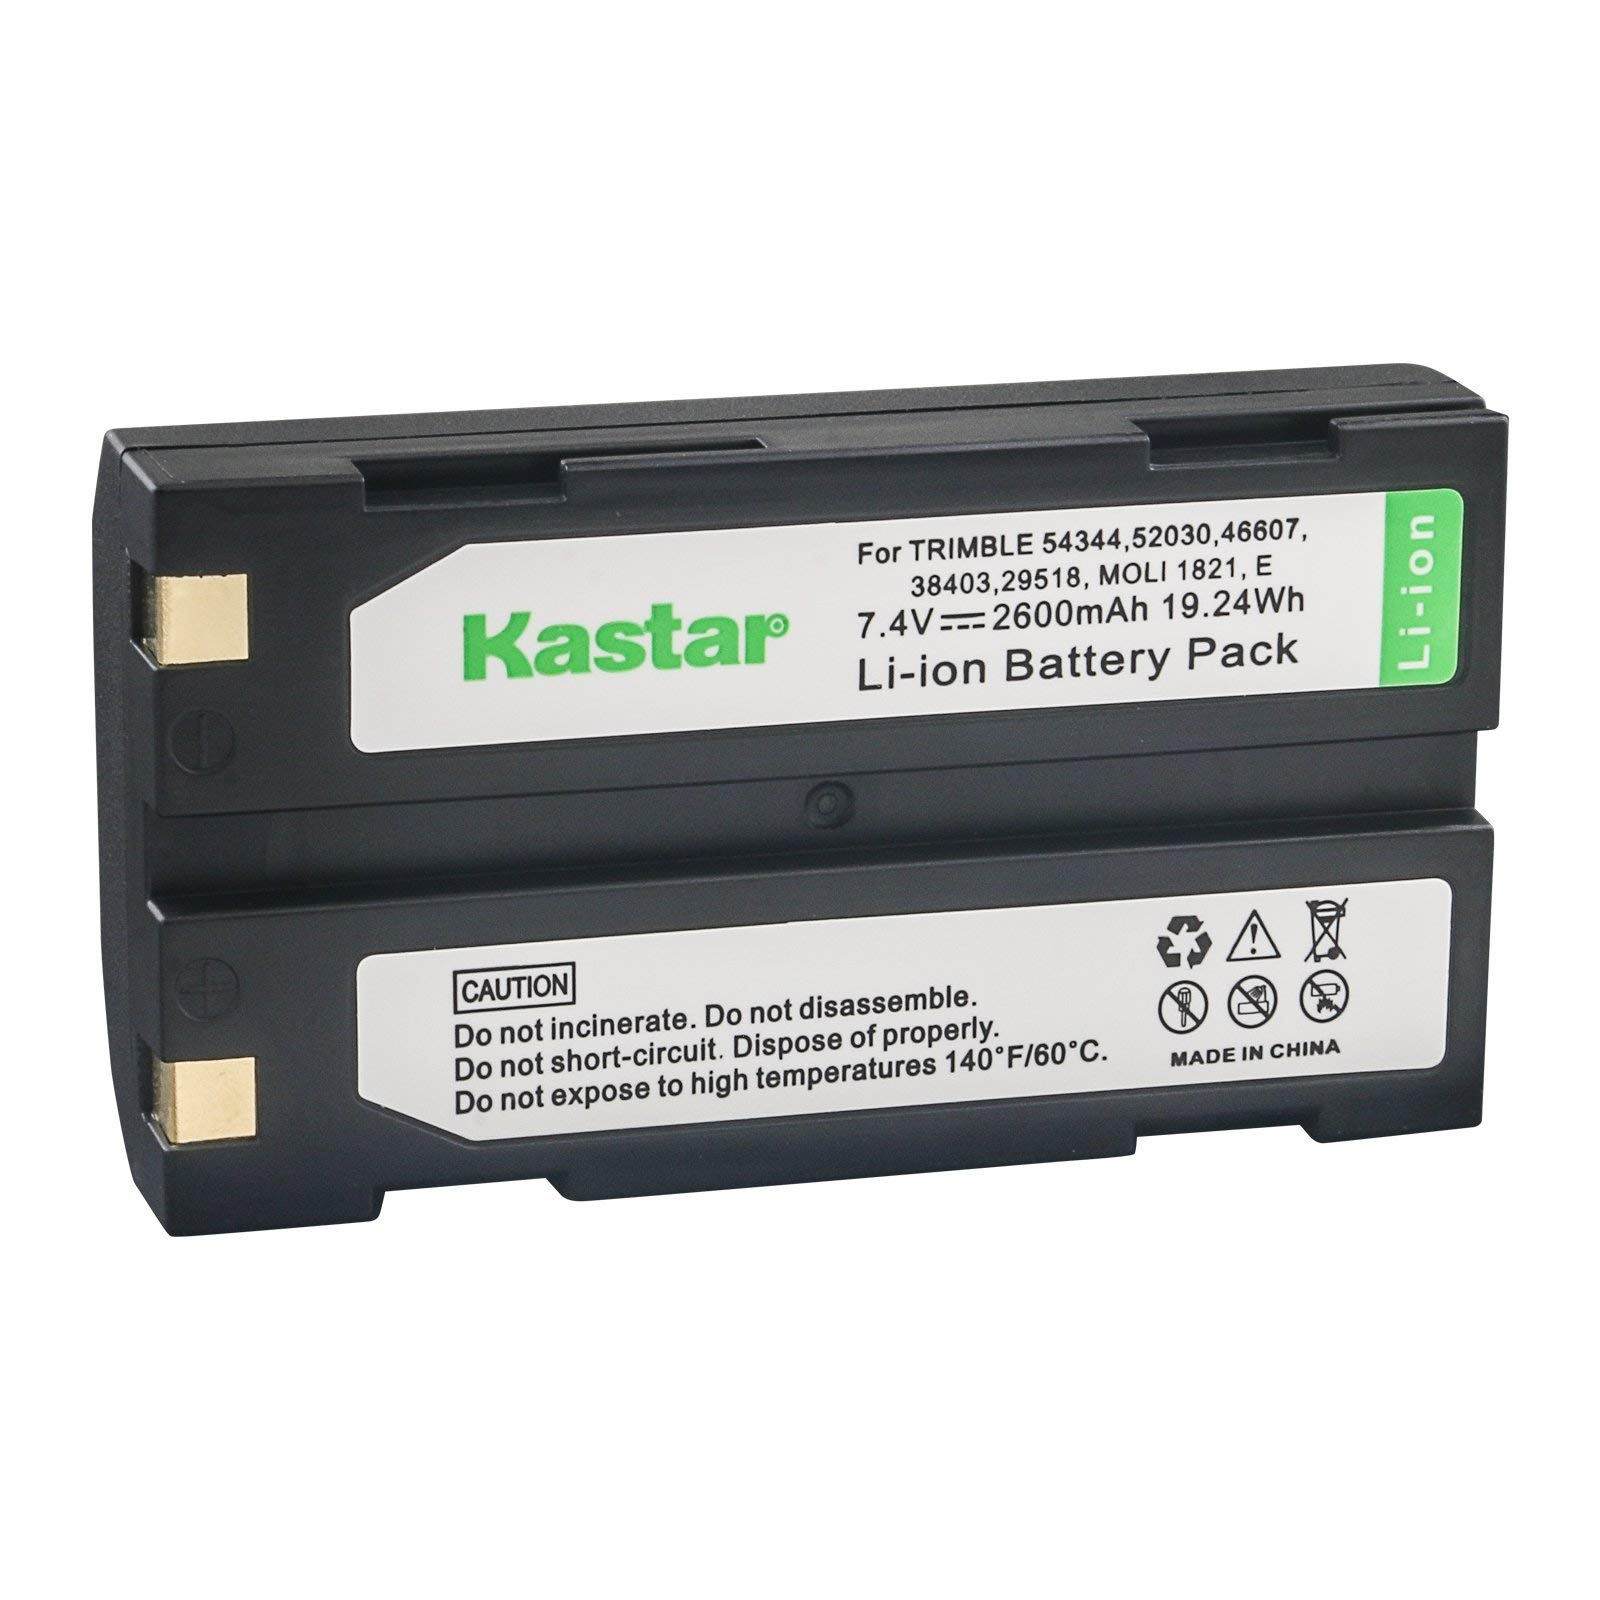 Kastar D-Li1 Battery 2 Pack Replacement for Pentax Ei-D-Li1 EI-D-BC1 EI-2000 Trimble 29518 46607 52030 54344 38403 5700 5800 R6 R7 R8 GNSS TR-R8 GPS MT1000 HP C8873A PhotoSmart 912 C912 912XI C912XI by Kastar (Image #2)